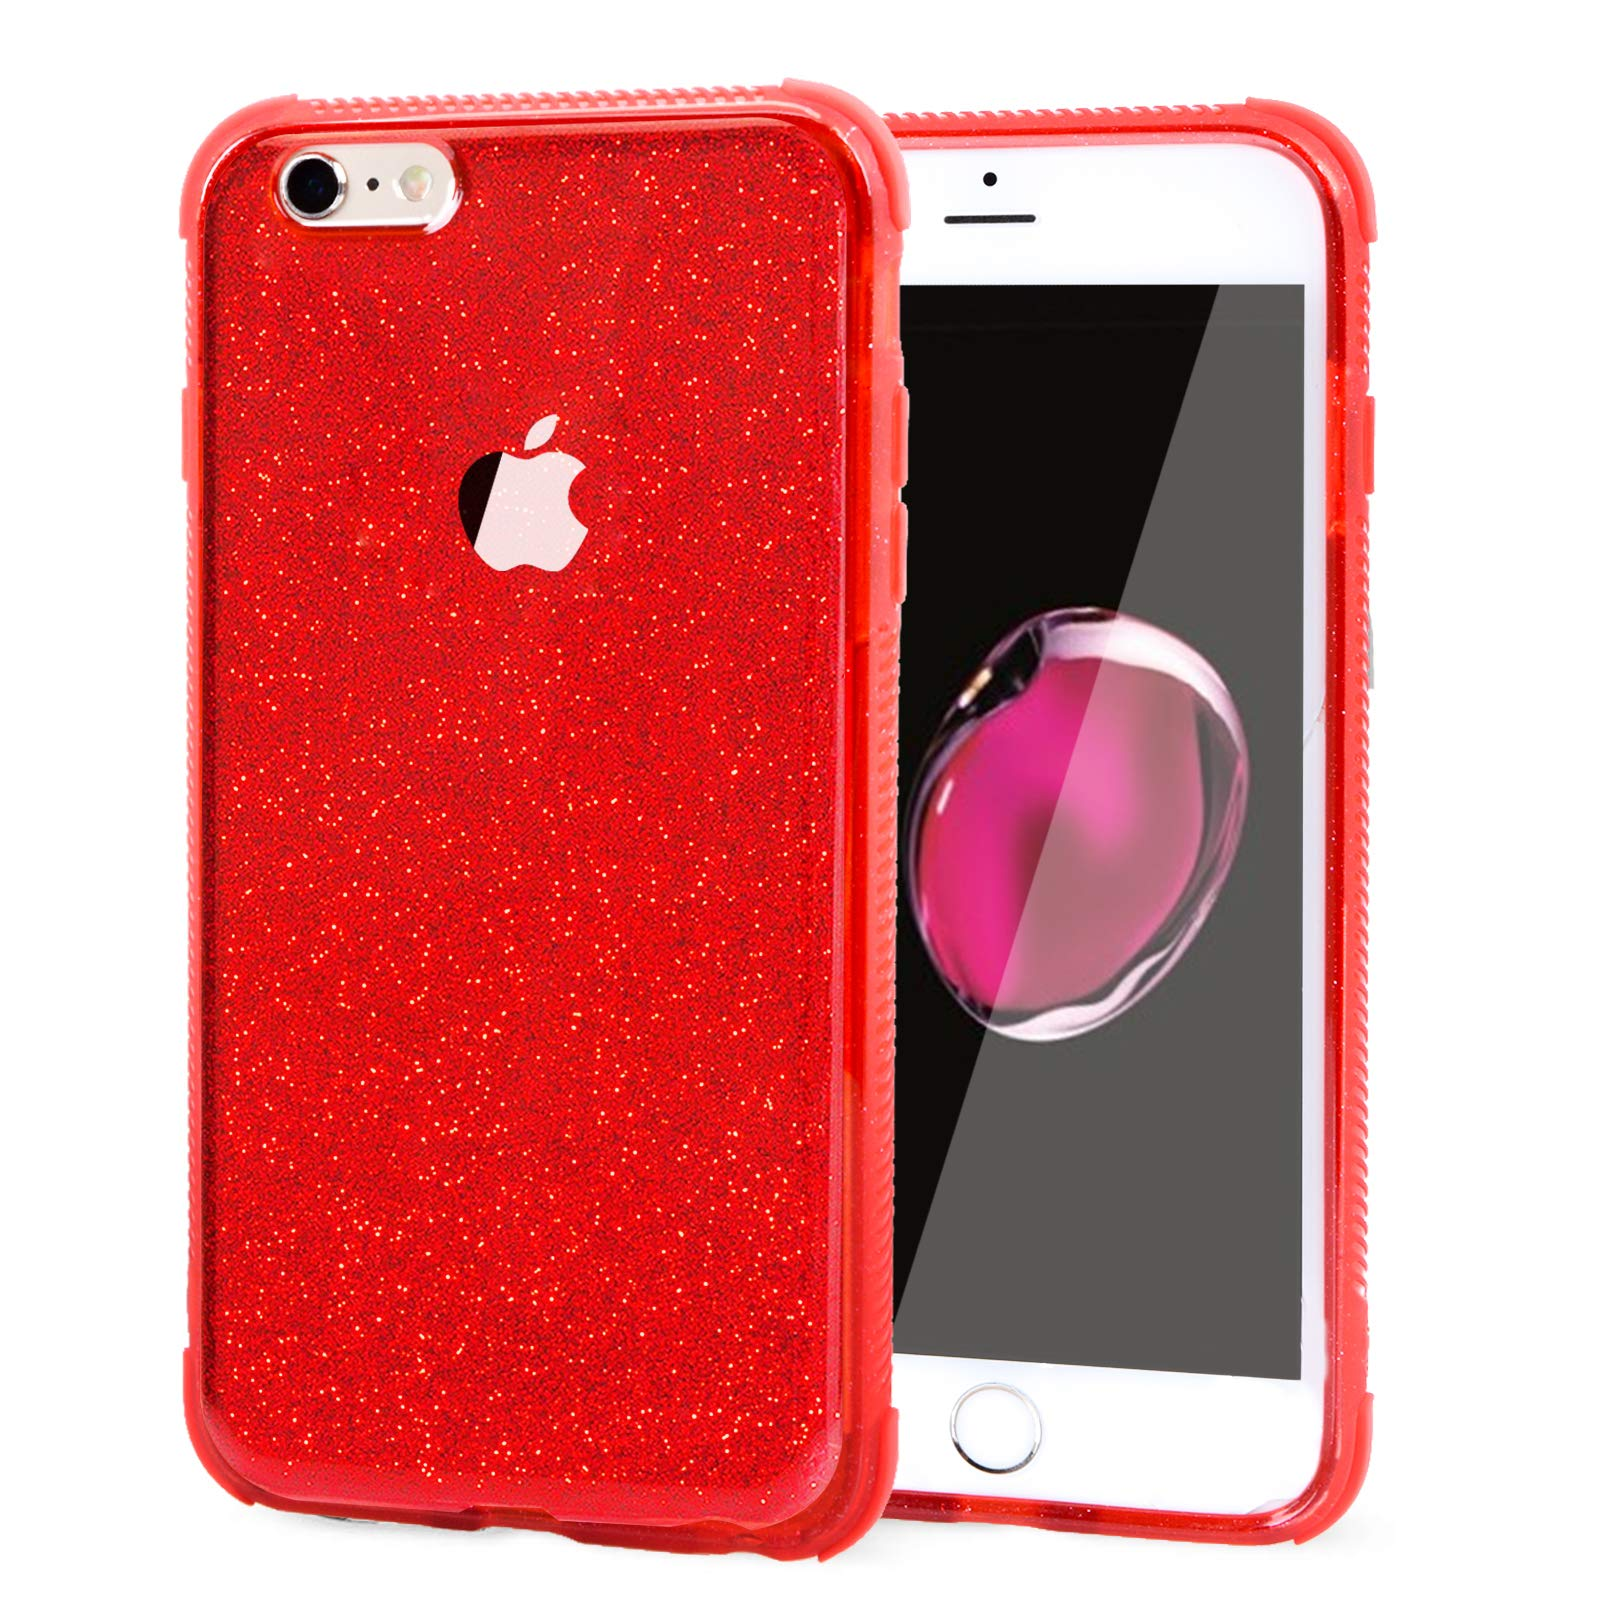 Voilamart iPhone 6 Case, iPhone 6s Case Bling Shiny Cute Pattern Design Sparkle Glitter Anti-Slick/Protective Case for iPhone 6/6s 4.7 Inch, Red